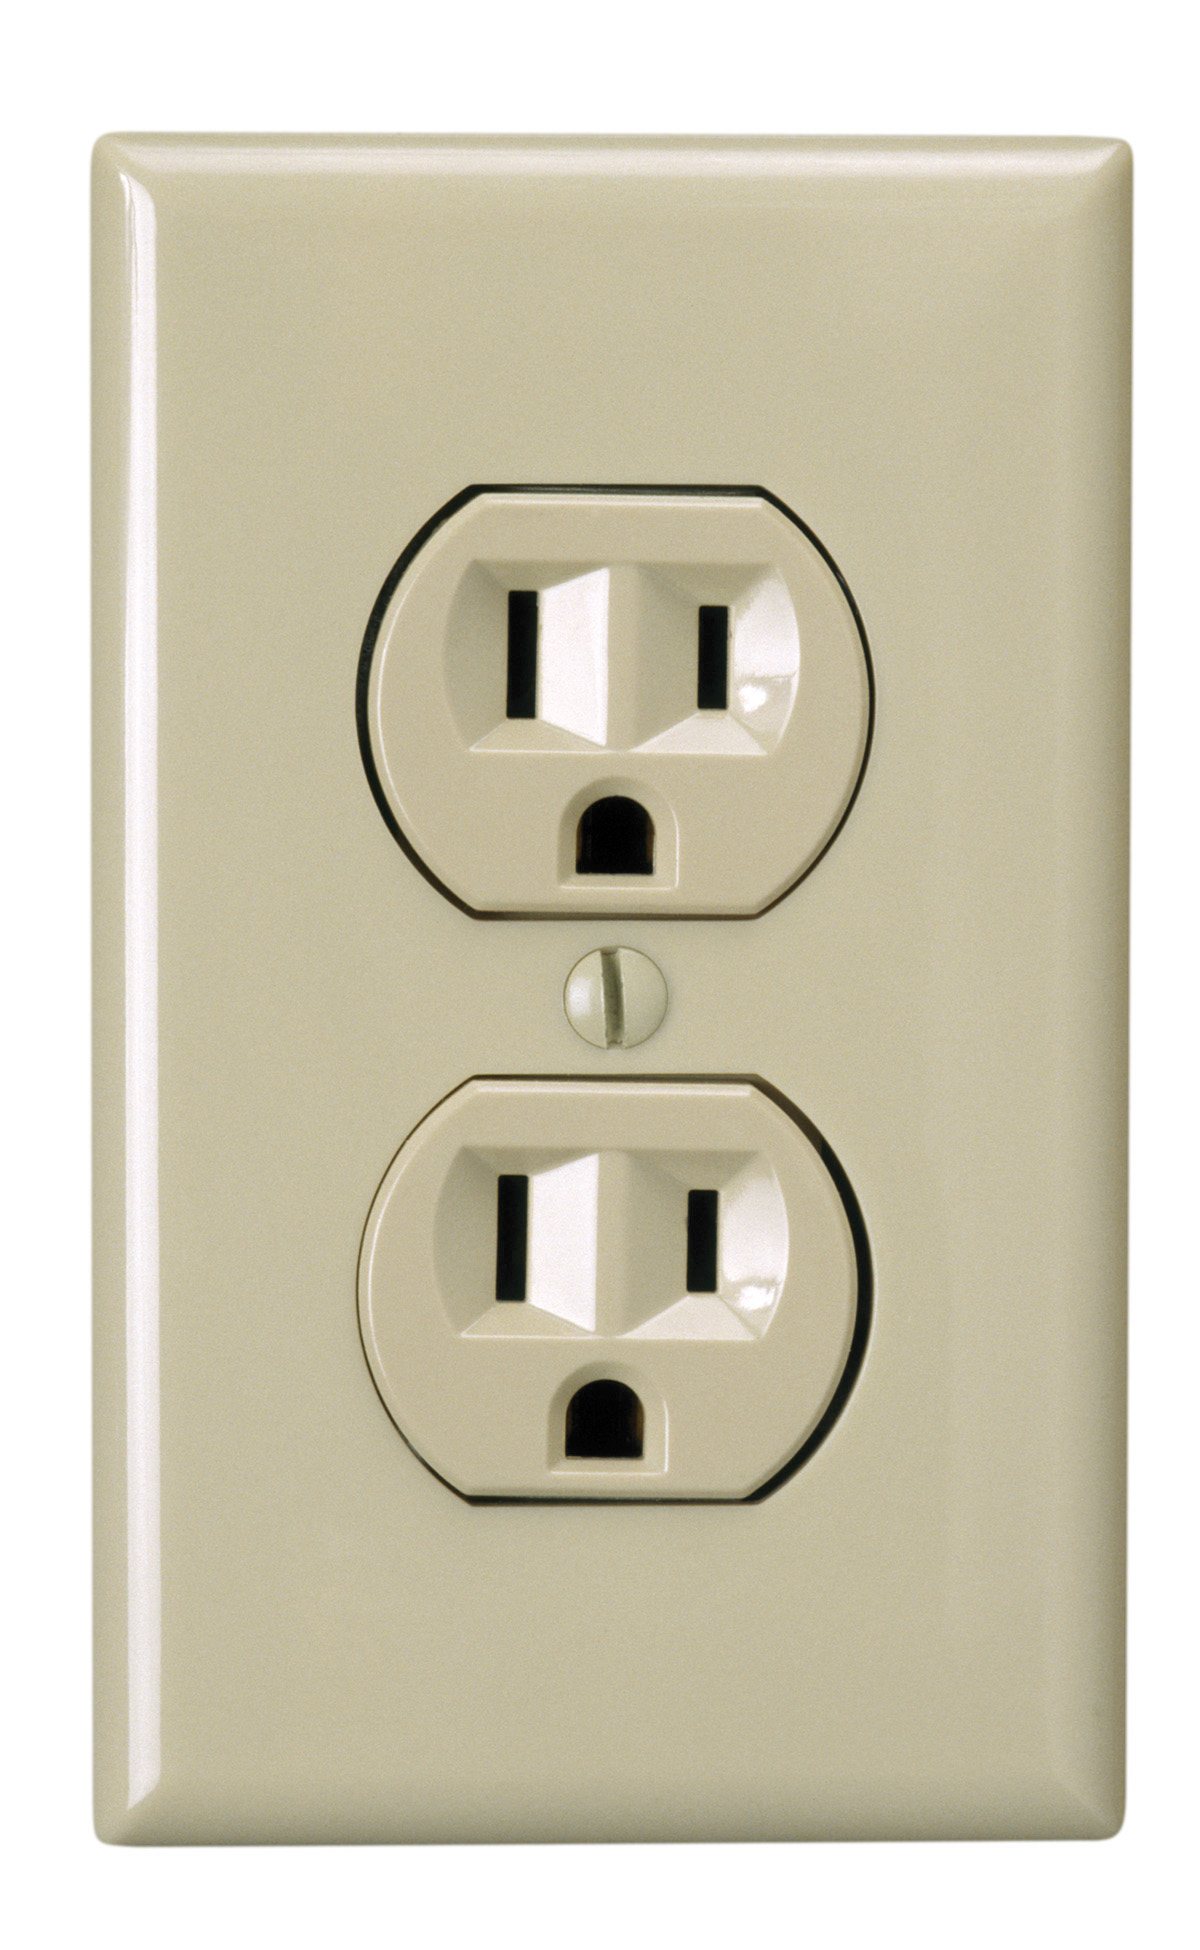 Ac outlet clipart.